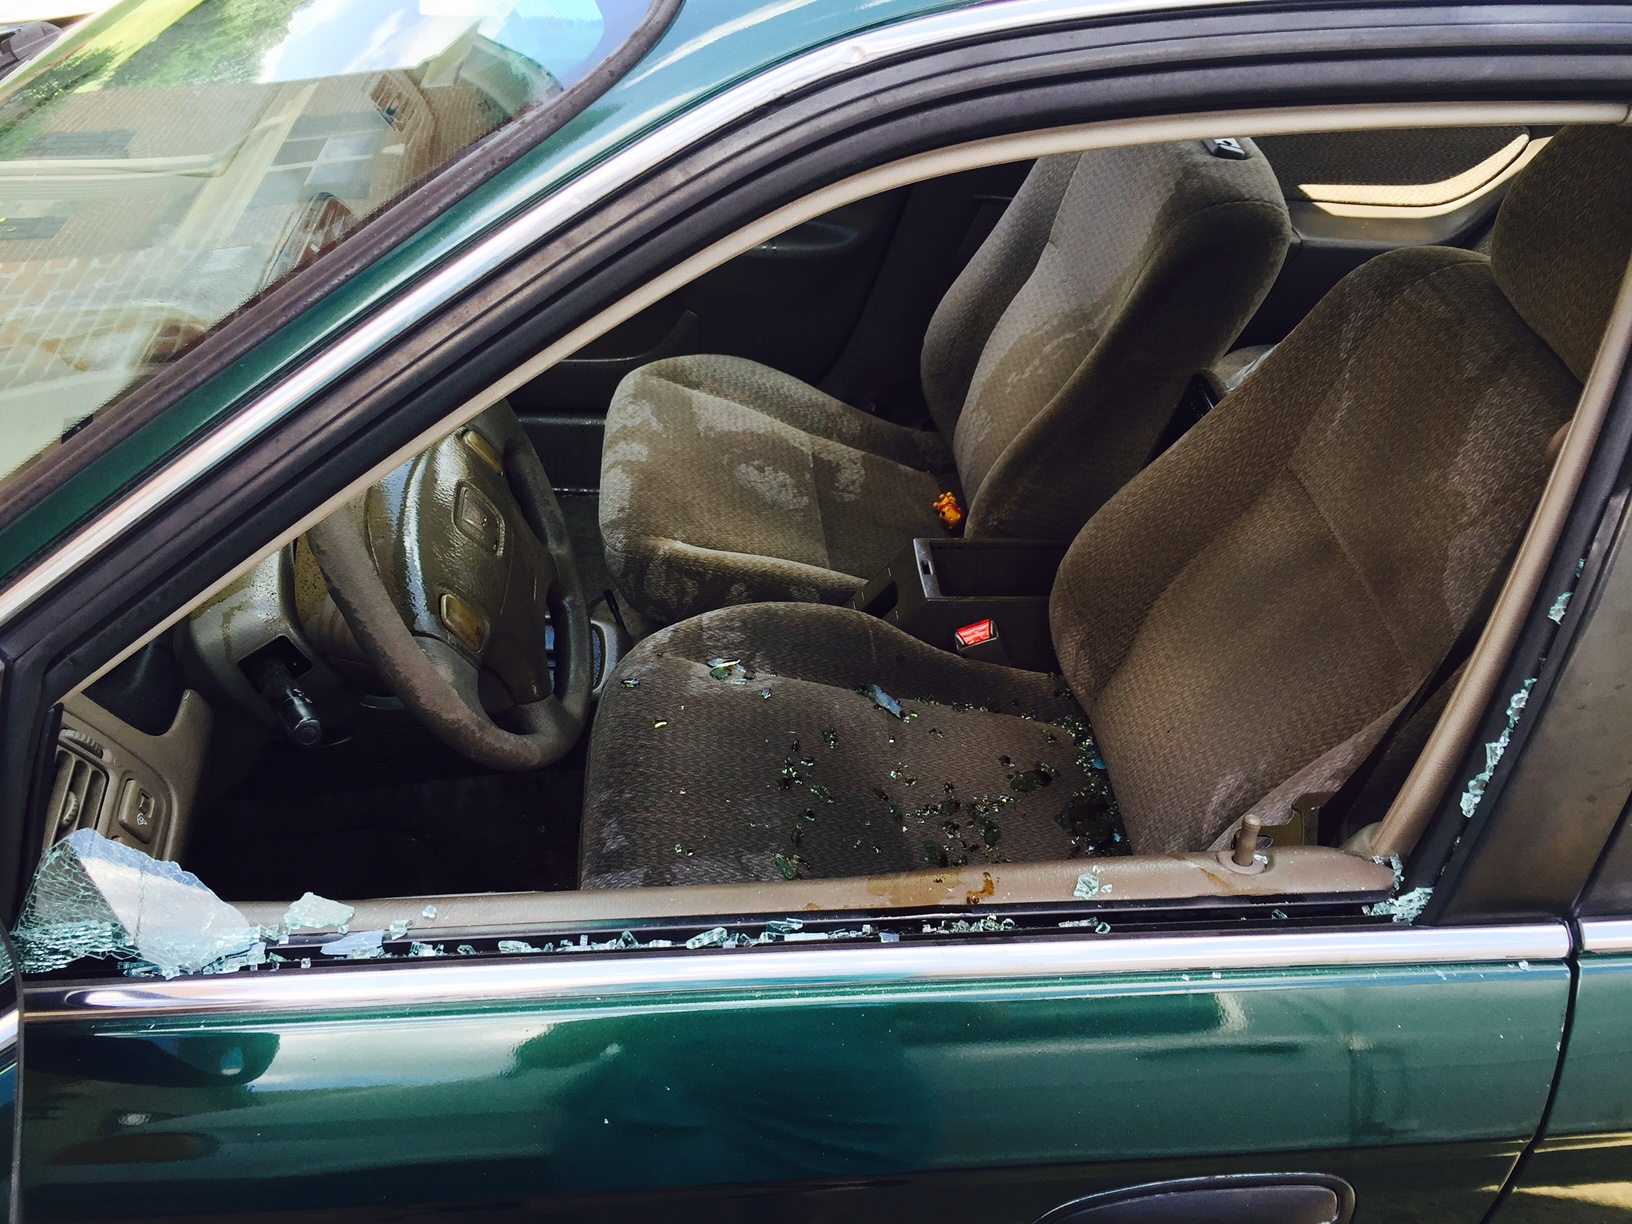 Seven windows between three vehicles were broken